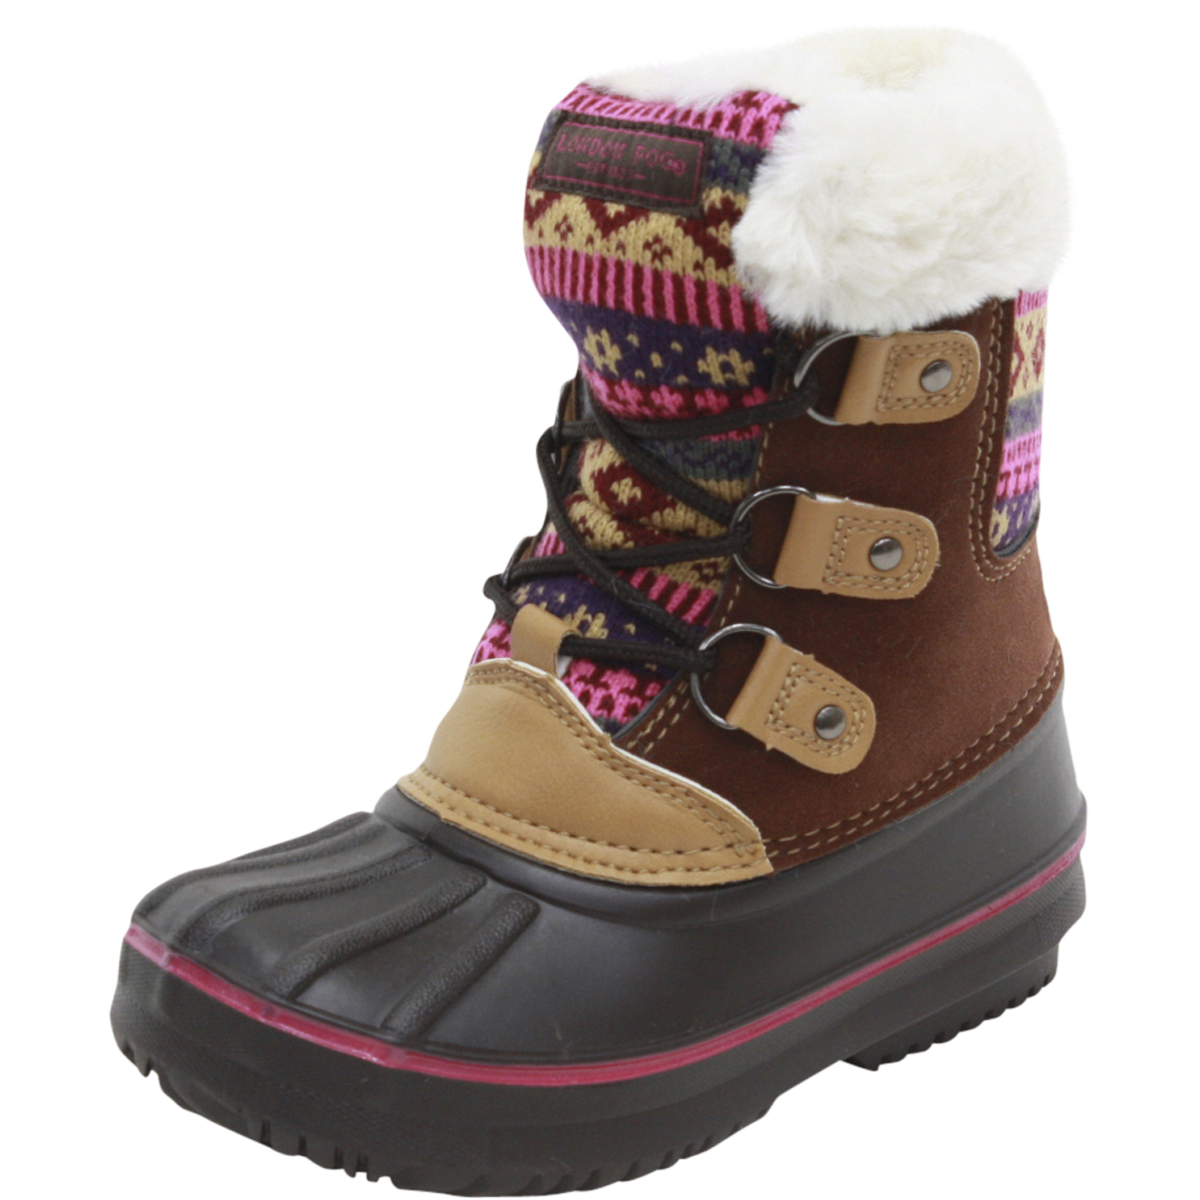 Image of London Fog Little/Big Girl's Tottenham Water Resistant Snow Boots Shoes - Brown - 12 M US Little Kid